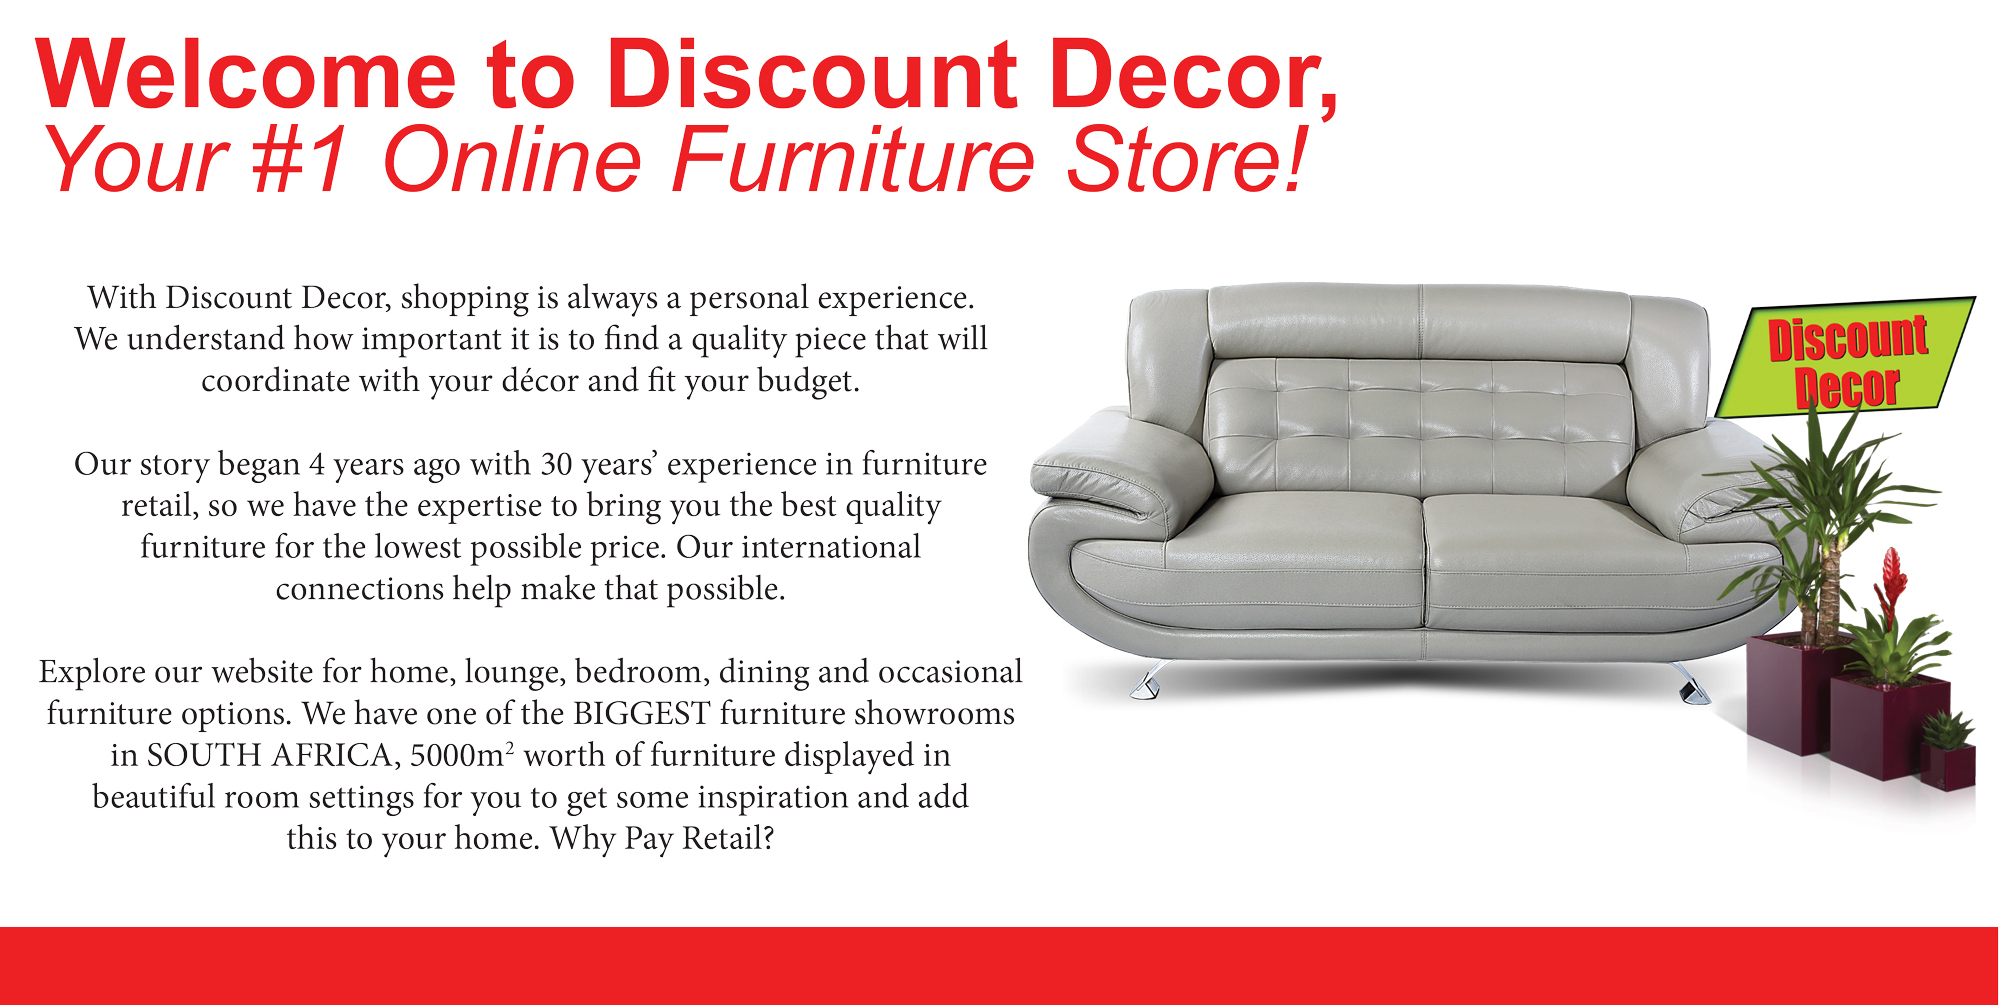 Furniture discount store home design ideas and pictures for Affordable home decor online stores